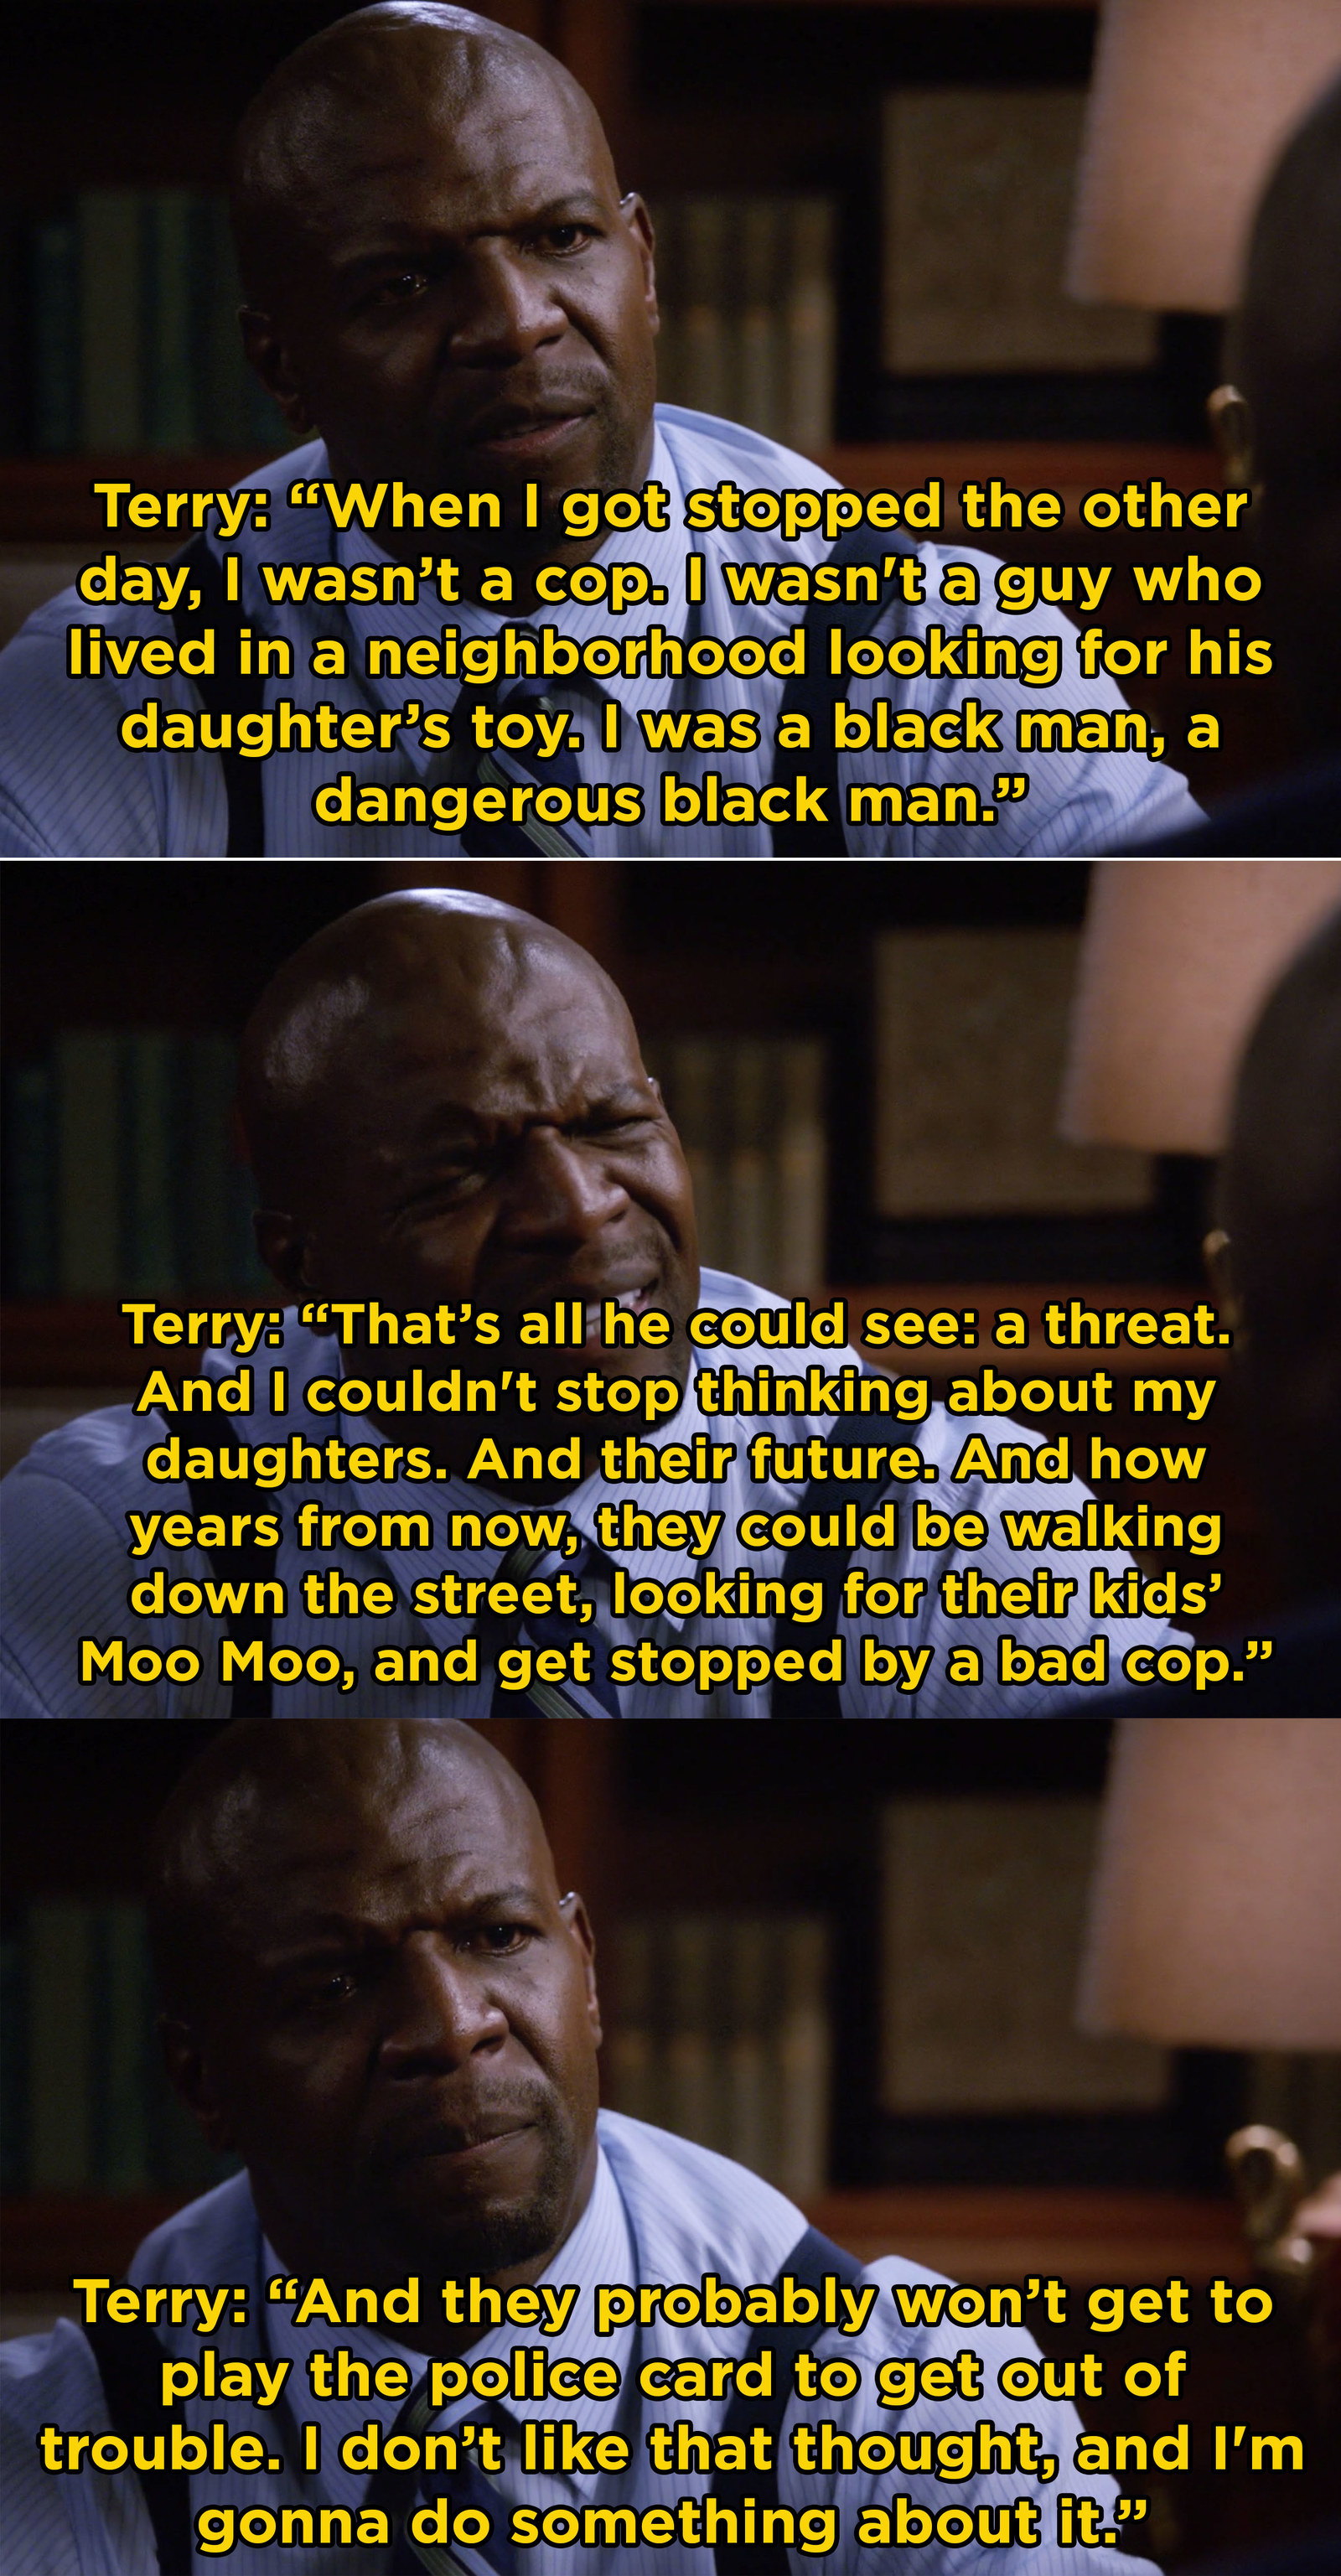 And then, when Terry was the subject of racial profiling in his own neighborhood